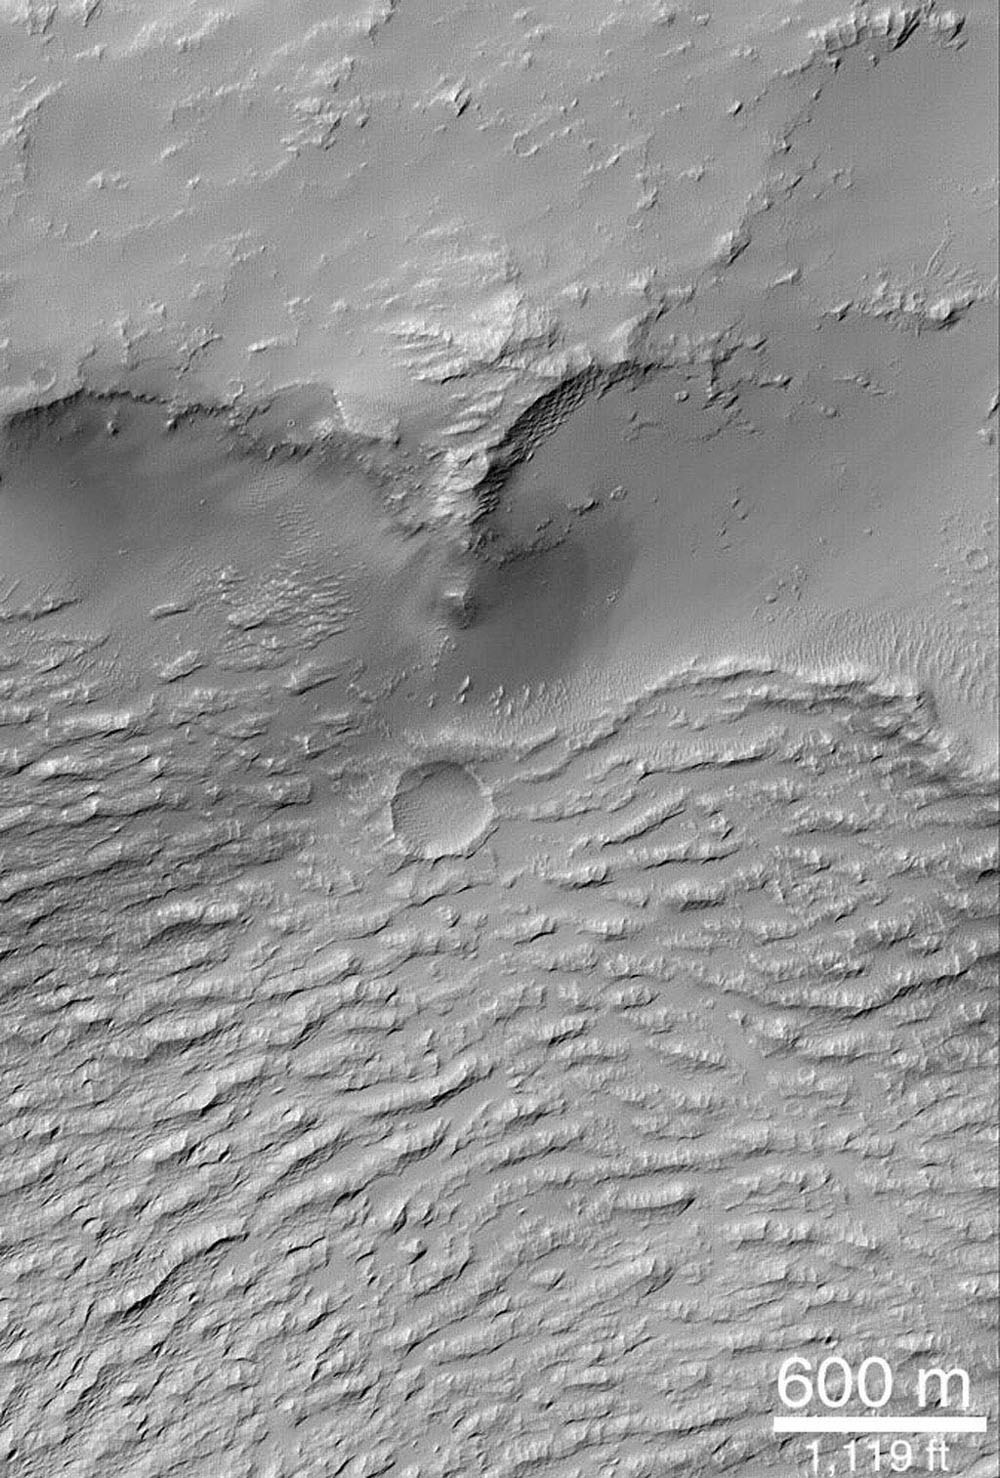 NASA's Mars Global Surveyor shows the ridged surface in the lower half of this image is that of a large lava flow in Daedalia Planum, southwest of the Arsia Mons volcano. This image was taken June 5, 1999.